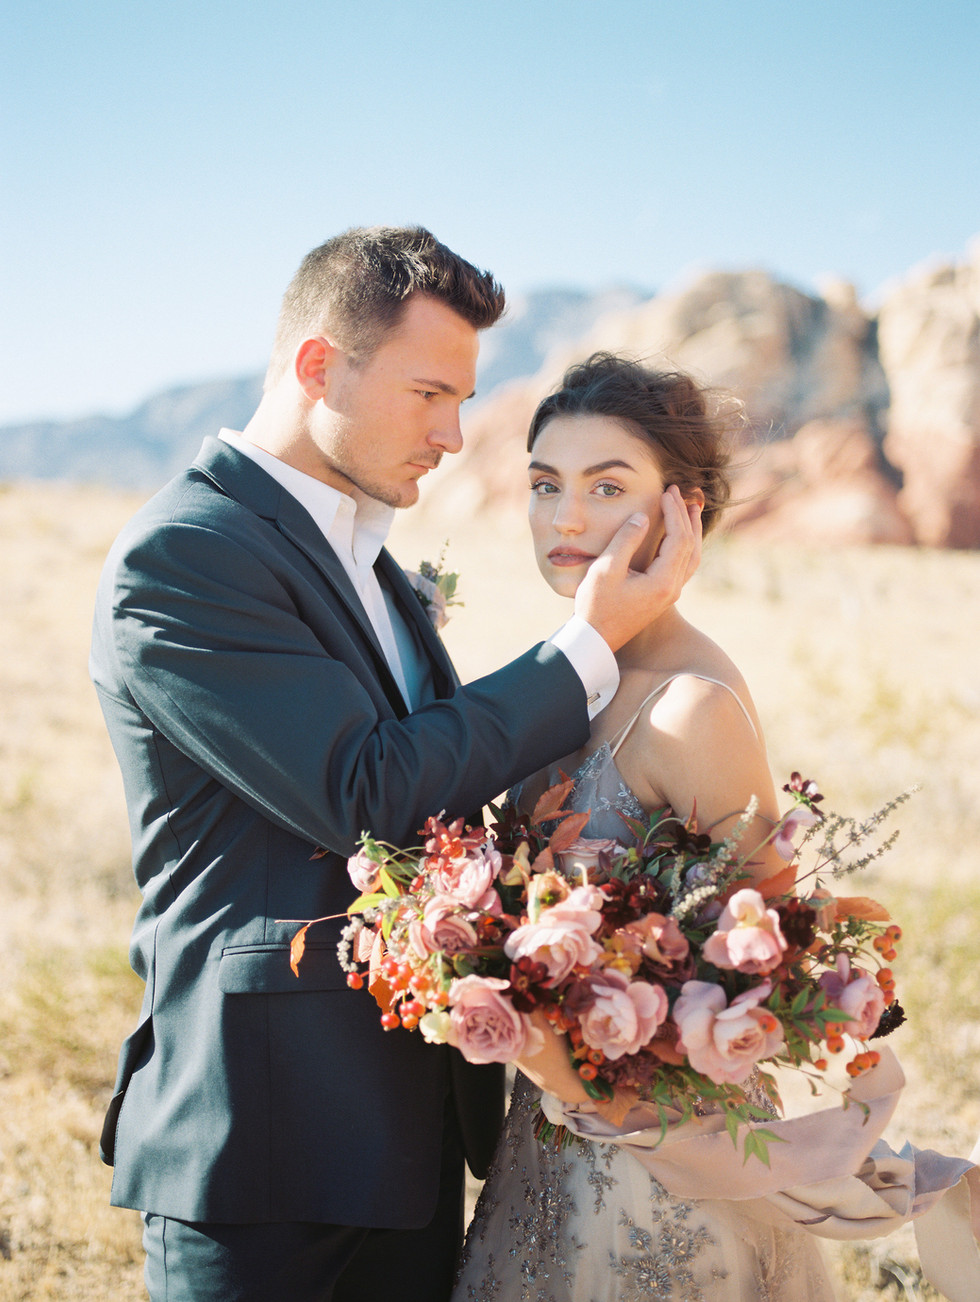 Las Vegas Elopement Inspiration at Red Rock Canyon-Featured on Grey Likes Weddings blog. Photo: Shannon Elizabeth